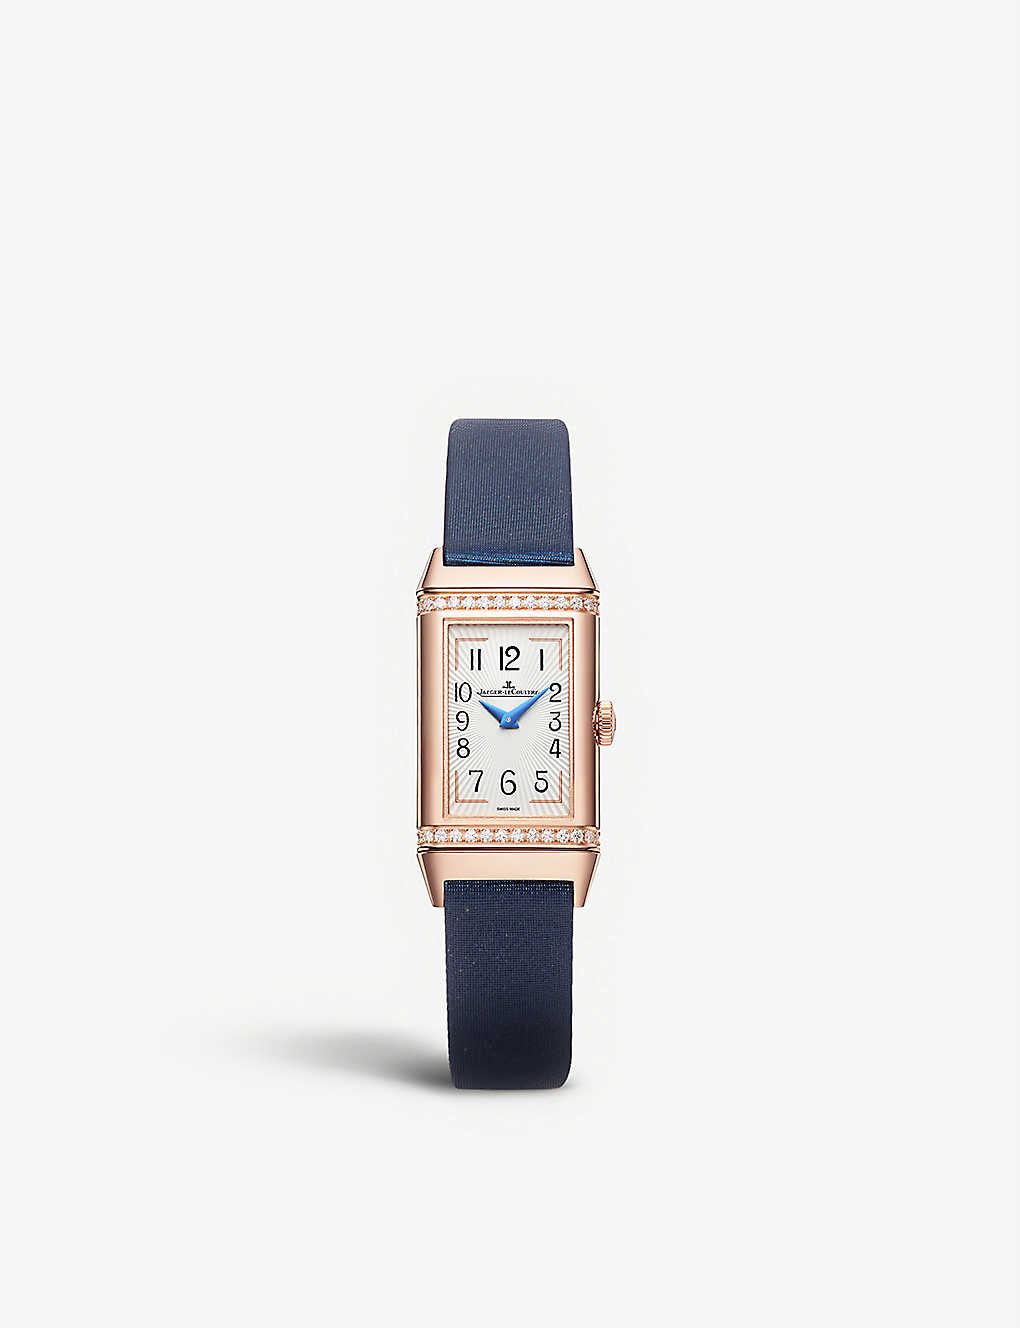 JAEGER-LECOULTRE: Q3342520 Reverso One Duetto pink-gold and leather watch